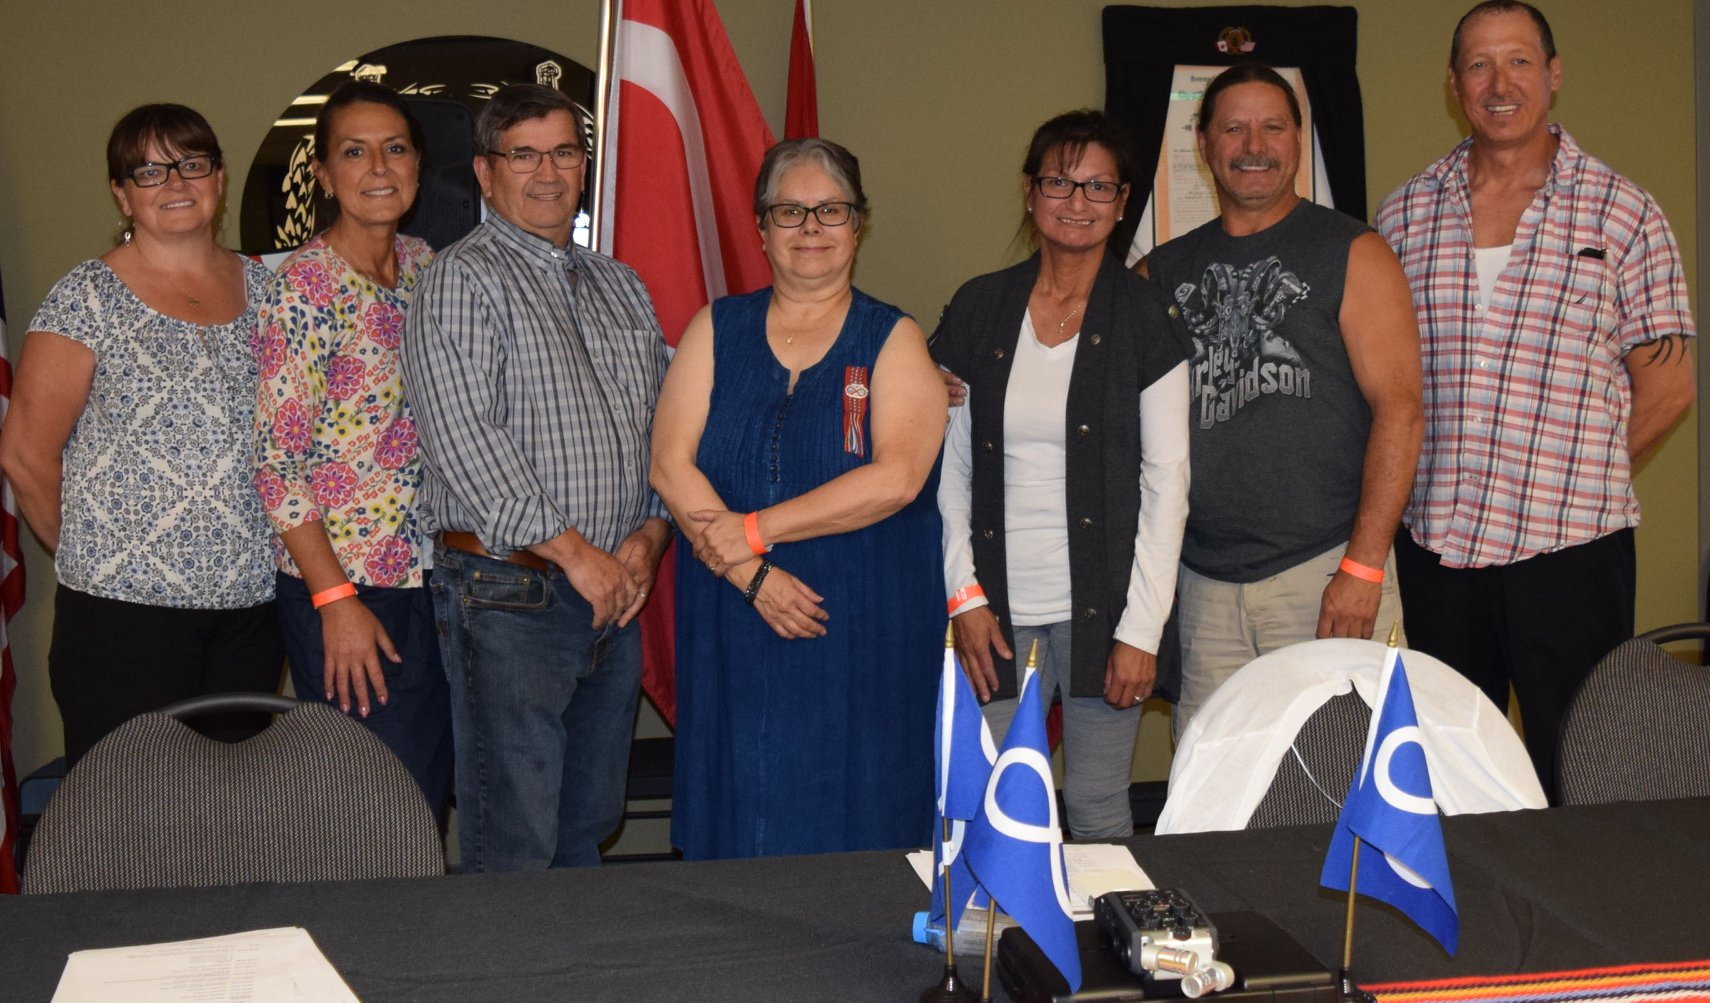 McMurray Métis Local 1935 Re-Elects Gail Gallupe As President